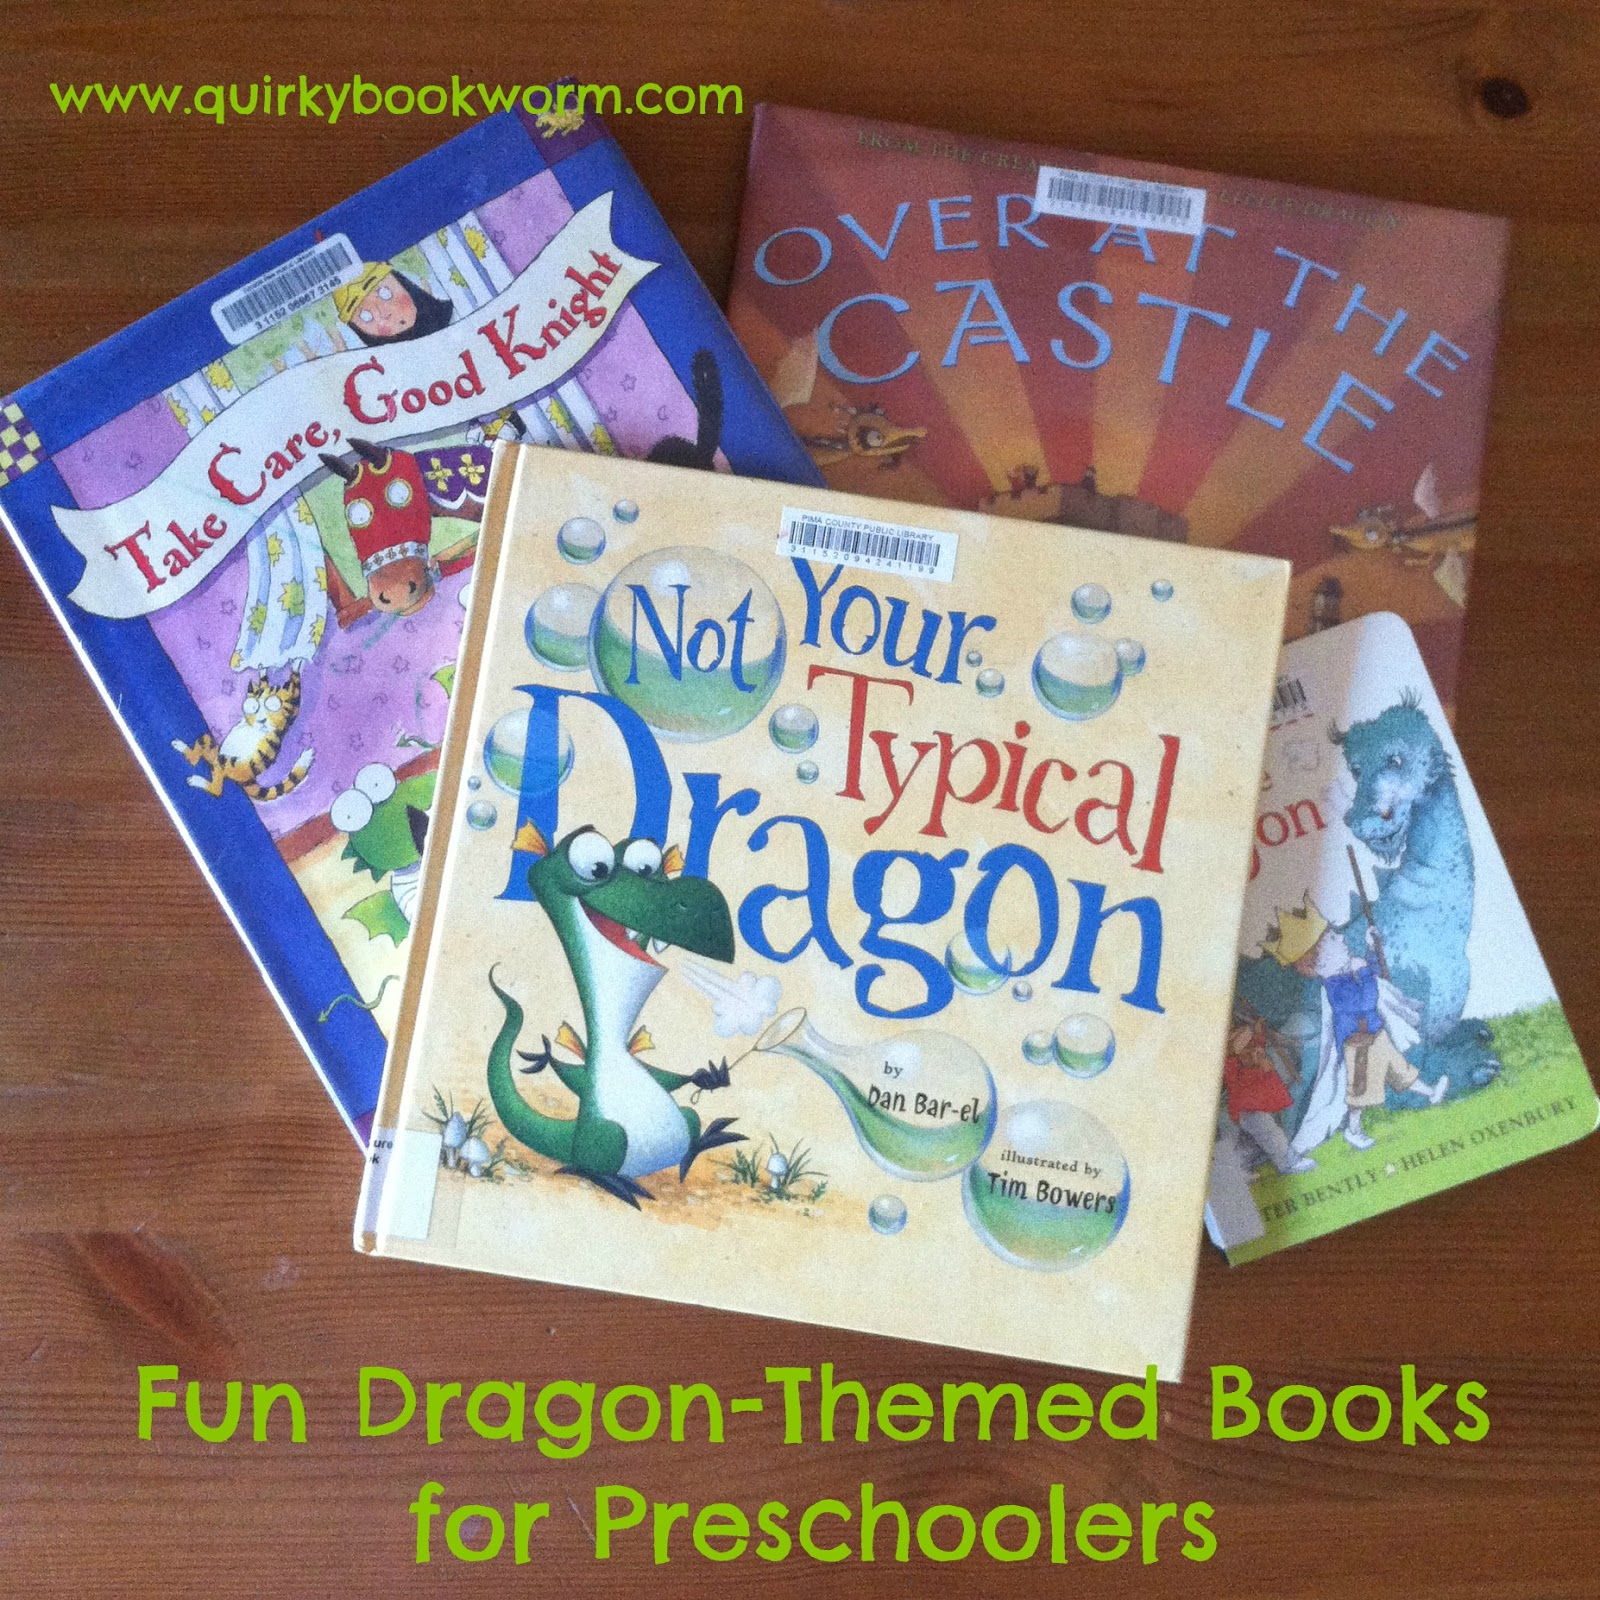 Quirky Bookworm: Fun Dragon-Themed Books for Preschoolers